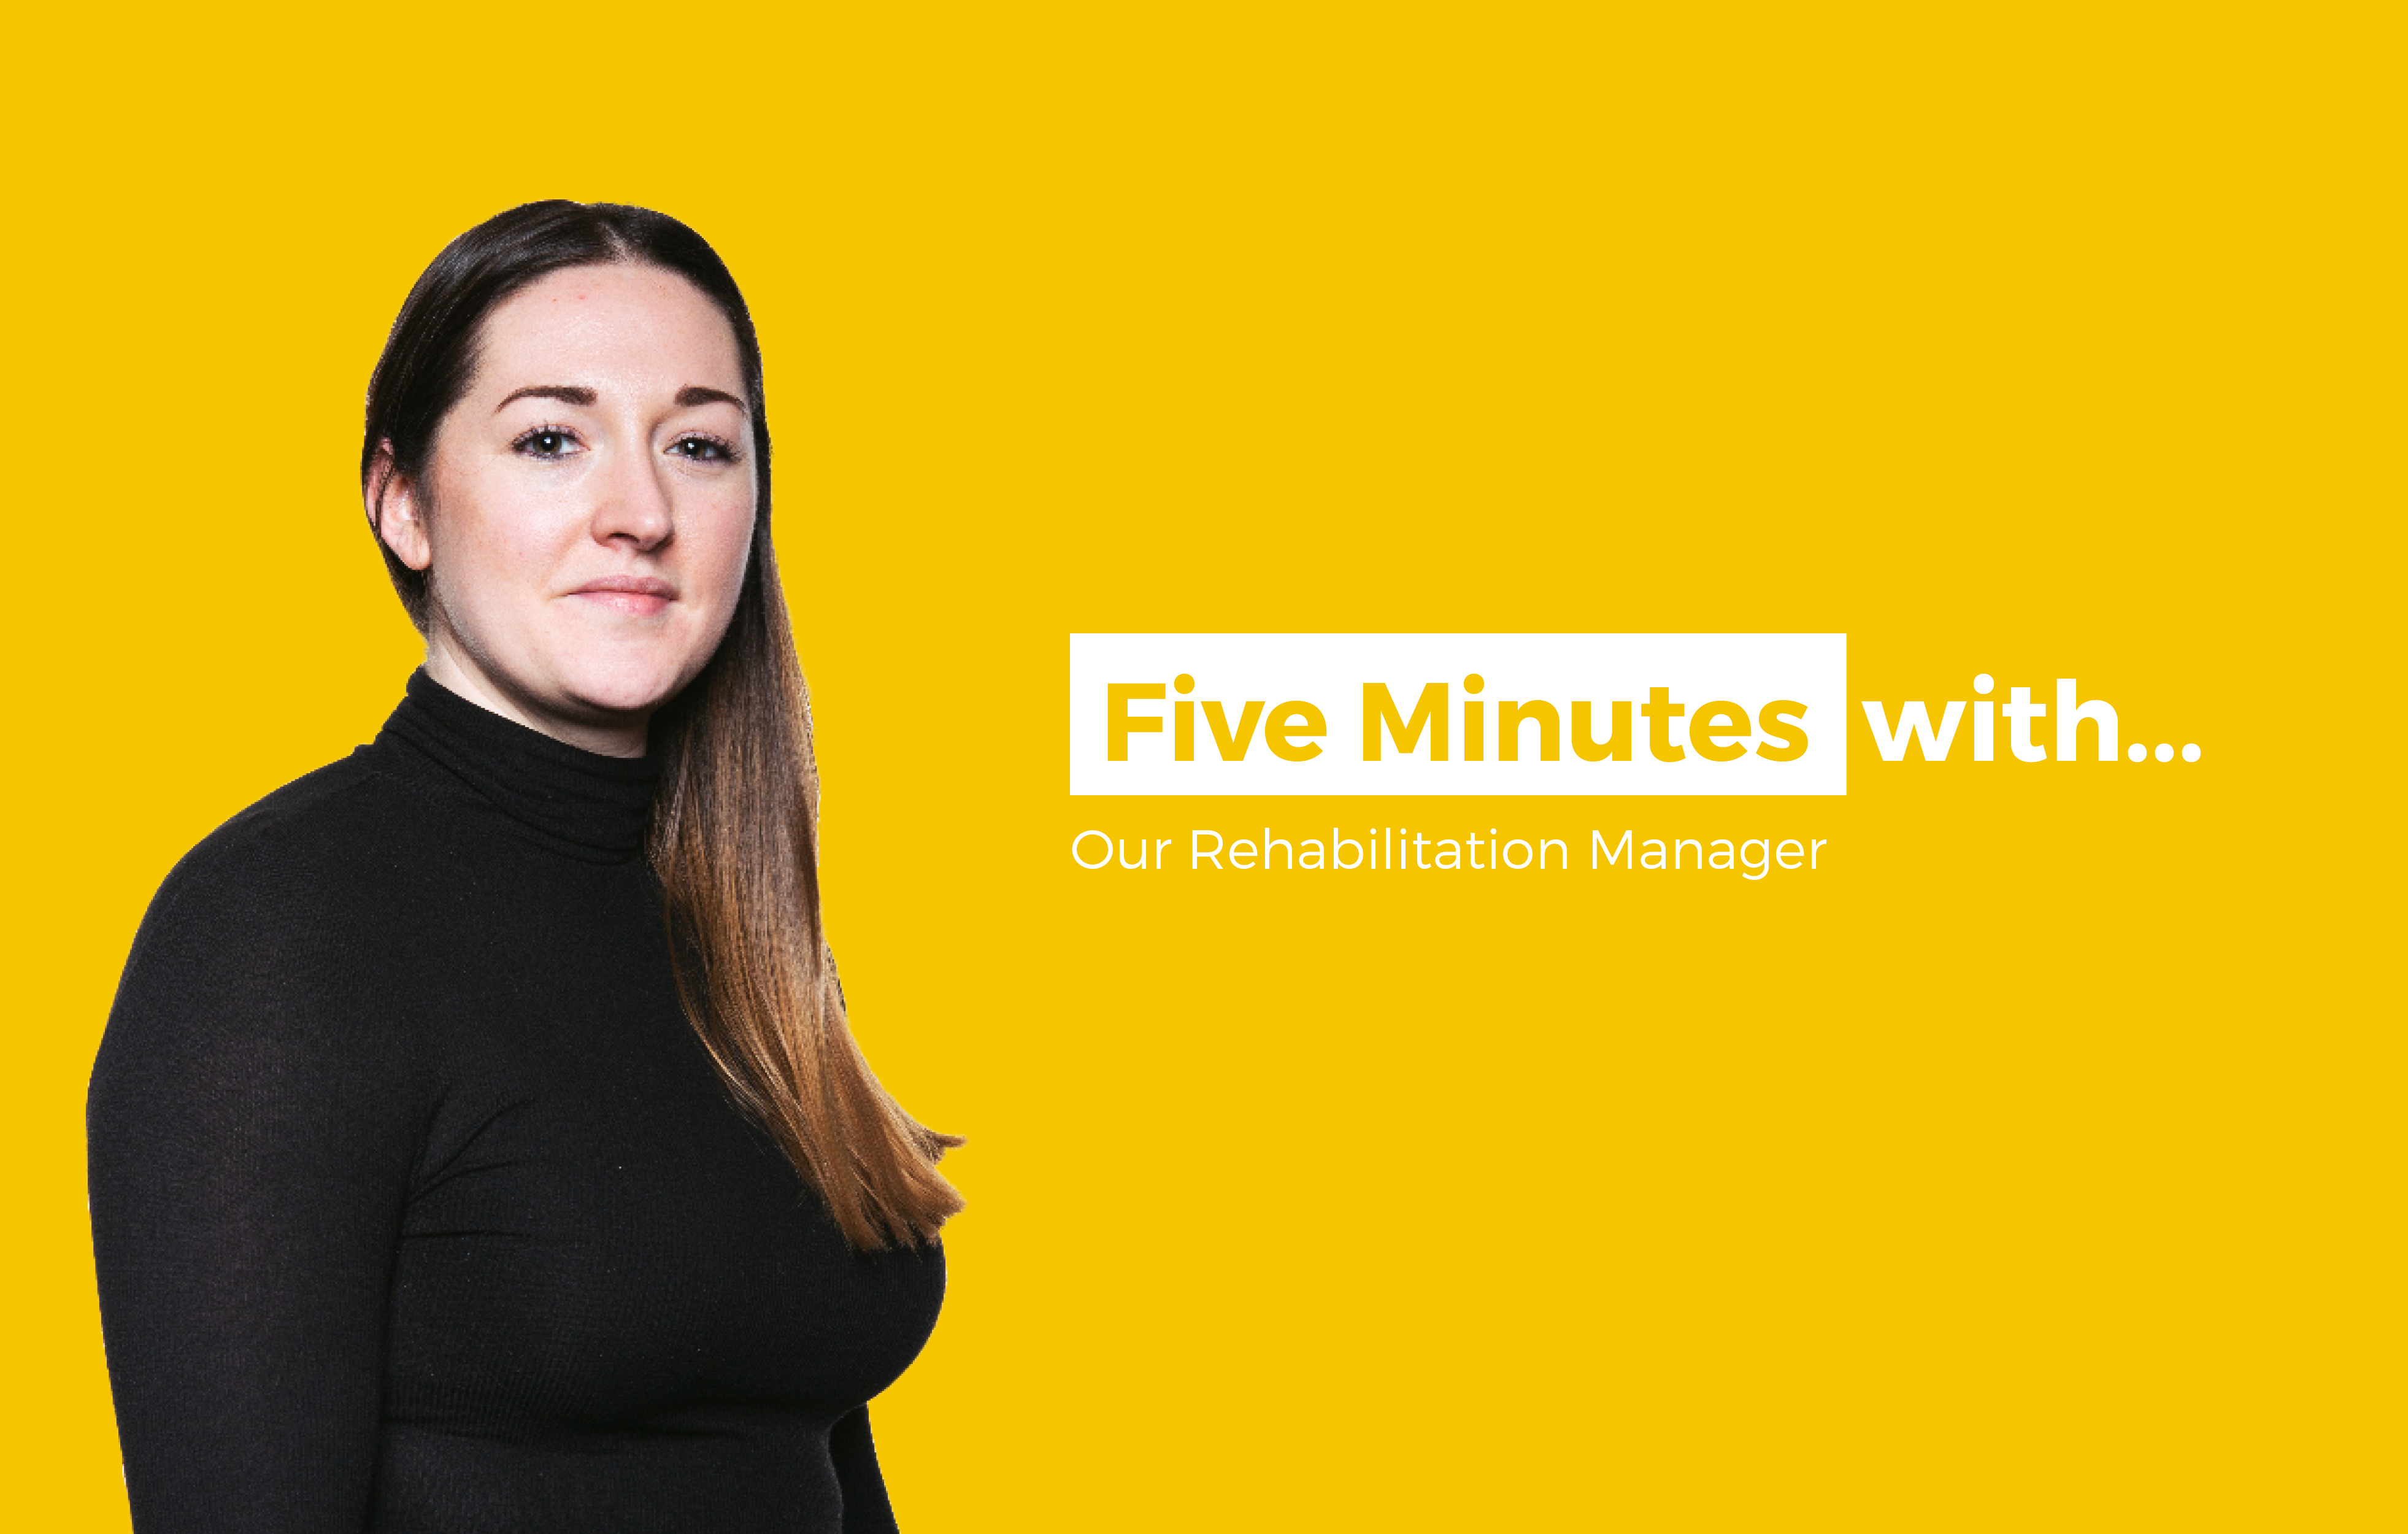 5 minutes with... Amanda Schofield, Rehabilitation Manager